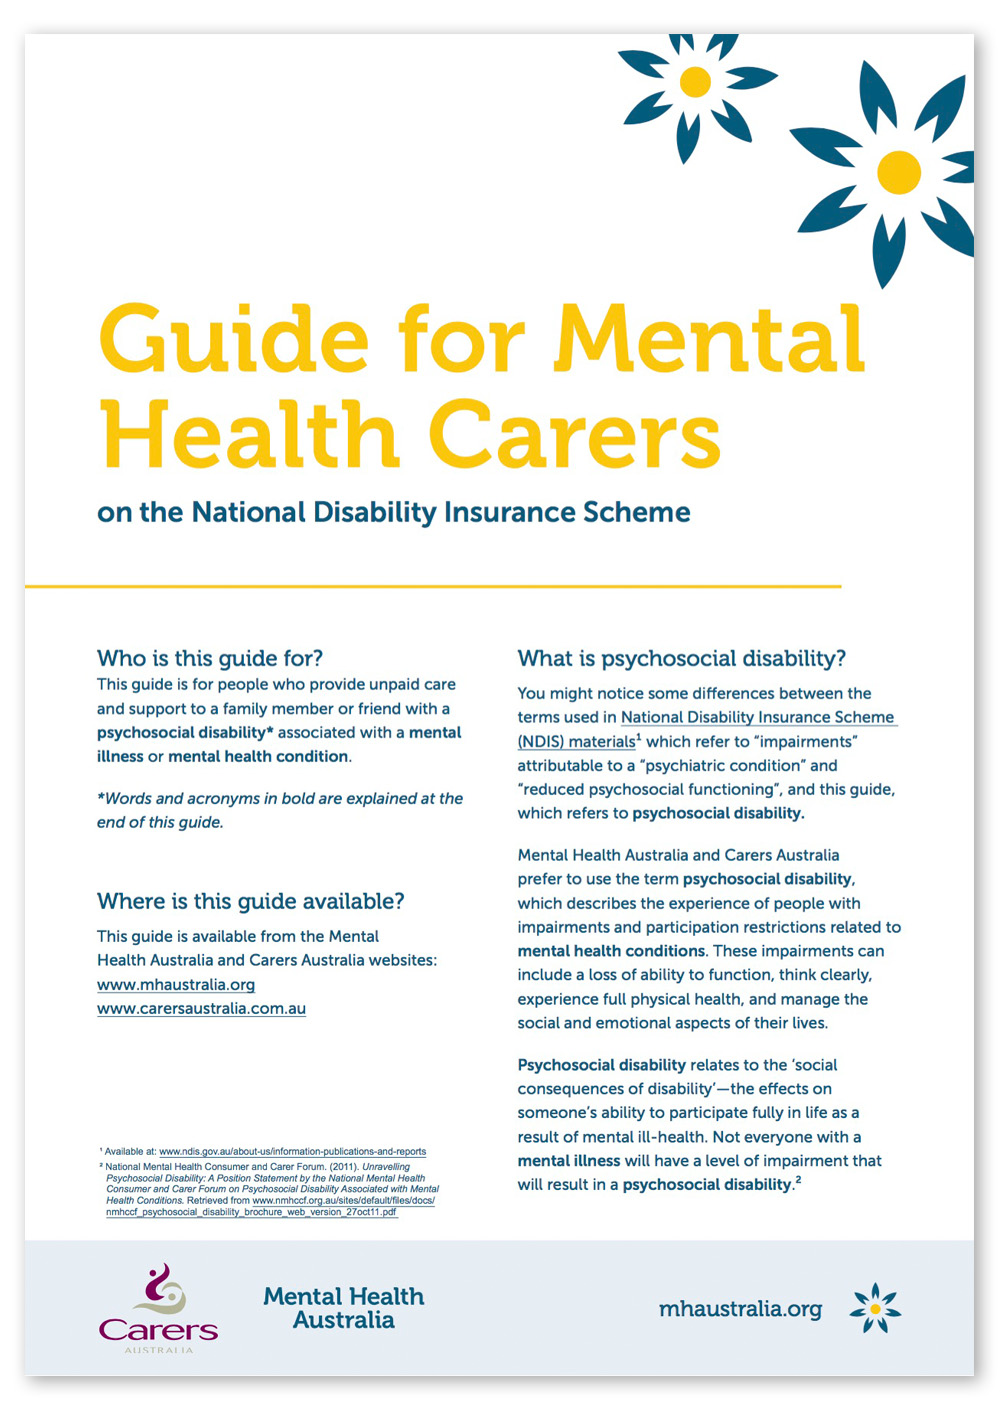 Screenshot of page 1 of the Mental Health Carers Guide PDF